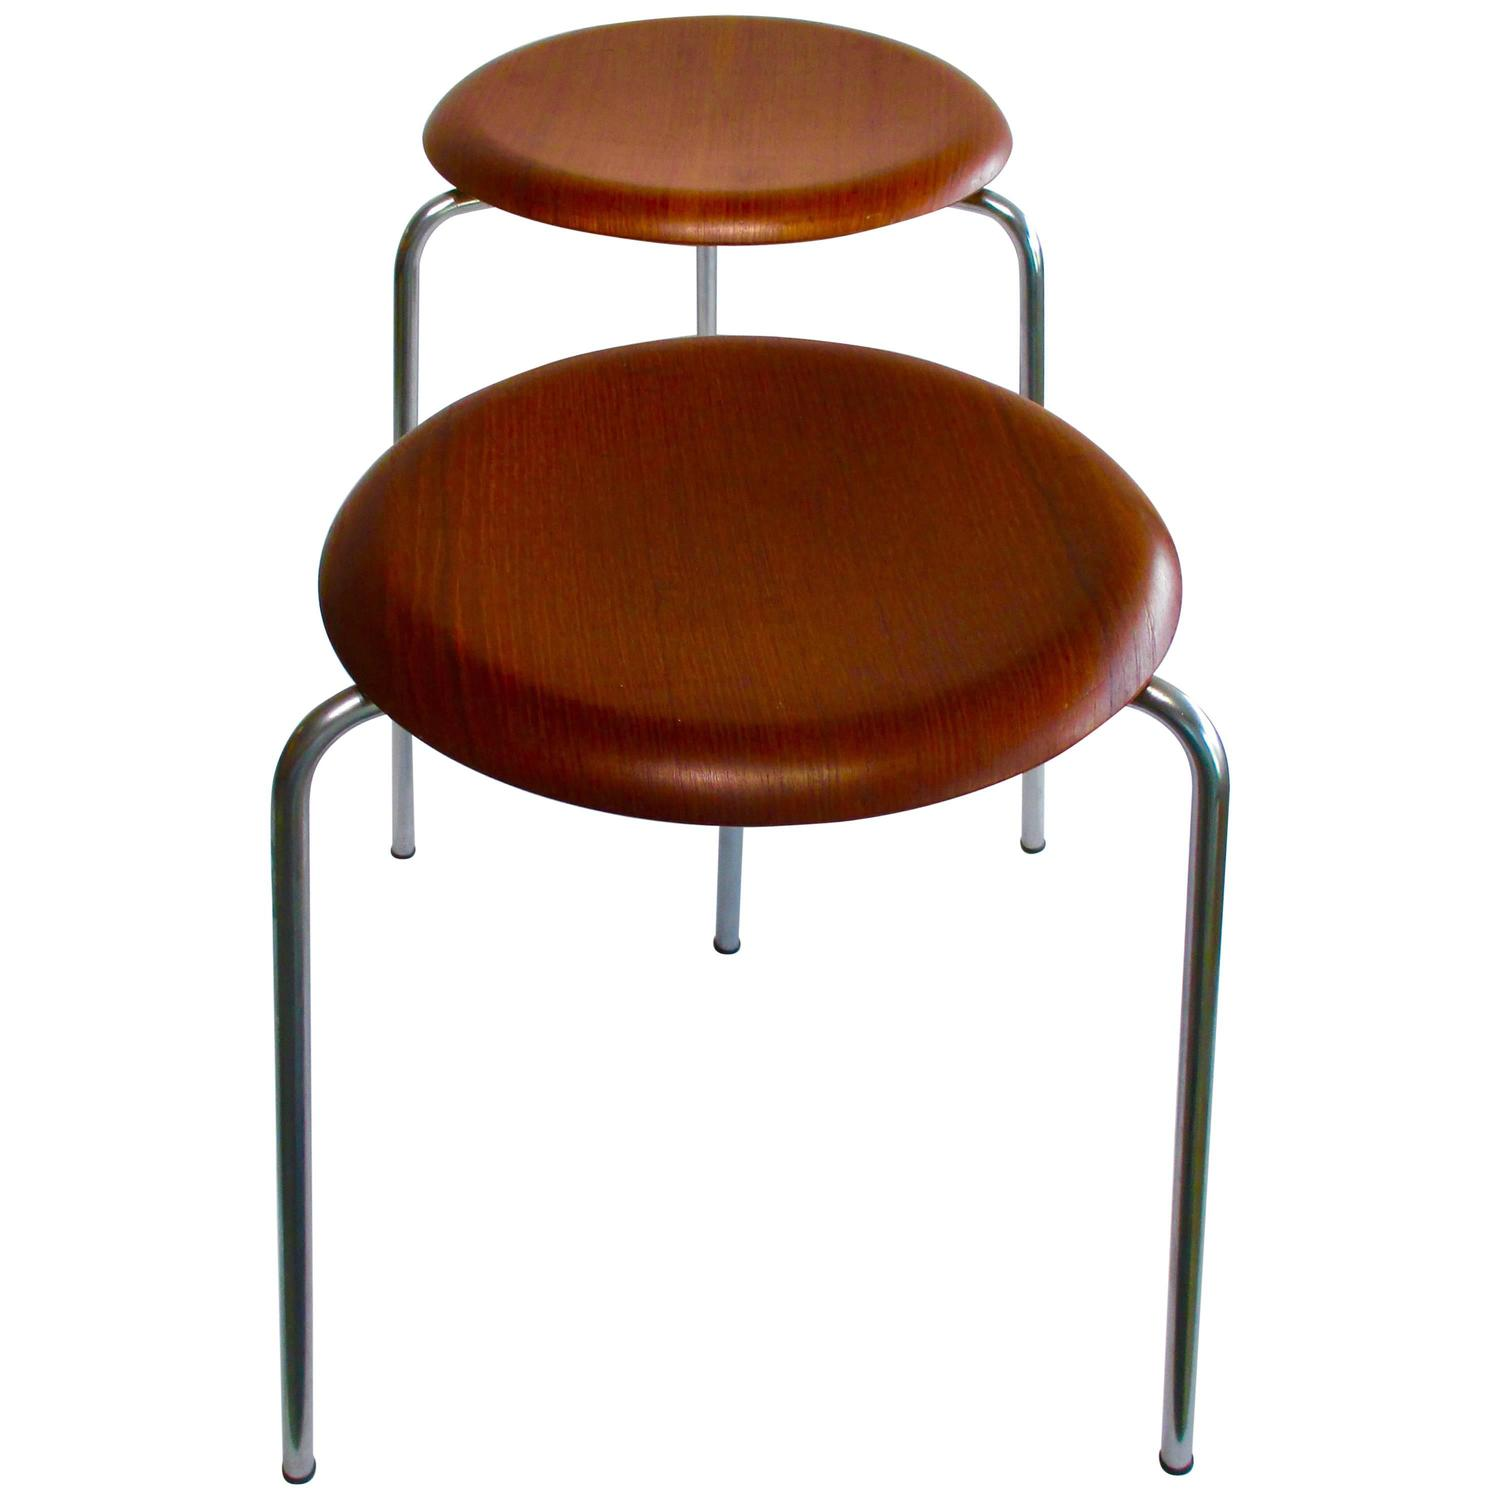 Dot Stools An Early Pair By Arne Jacobson At 1stdibs